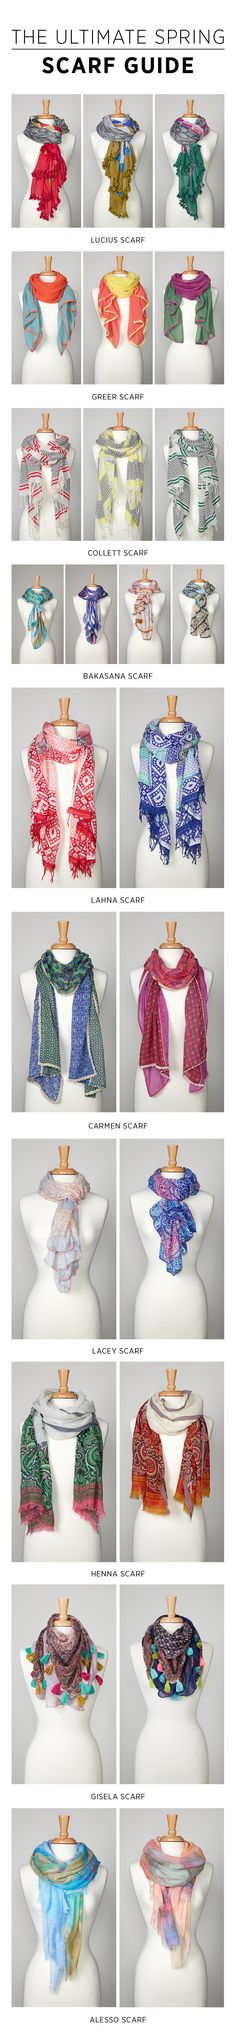 The ultimate spring scarf guide! Hands down, our scarves offer the best in cozy, sustainable style. Head to prAna.com to shop versatile eco friendly fashion.